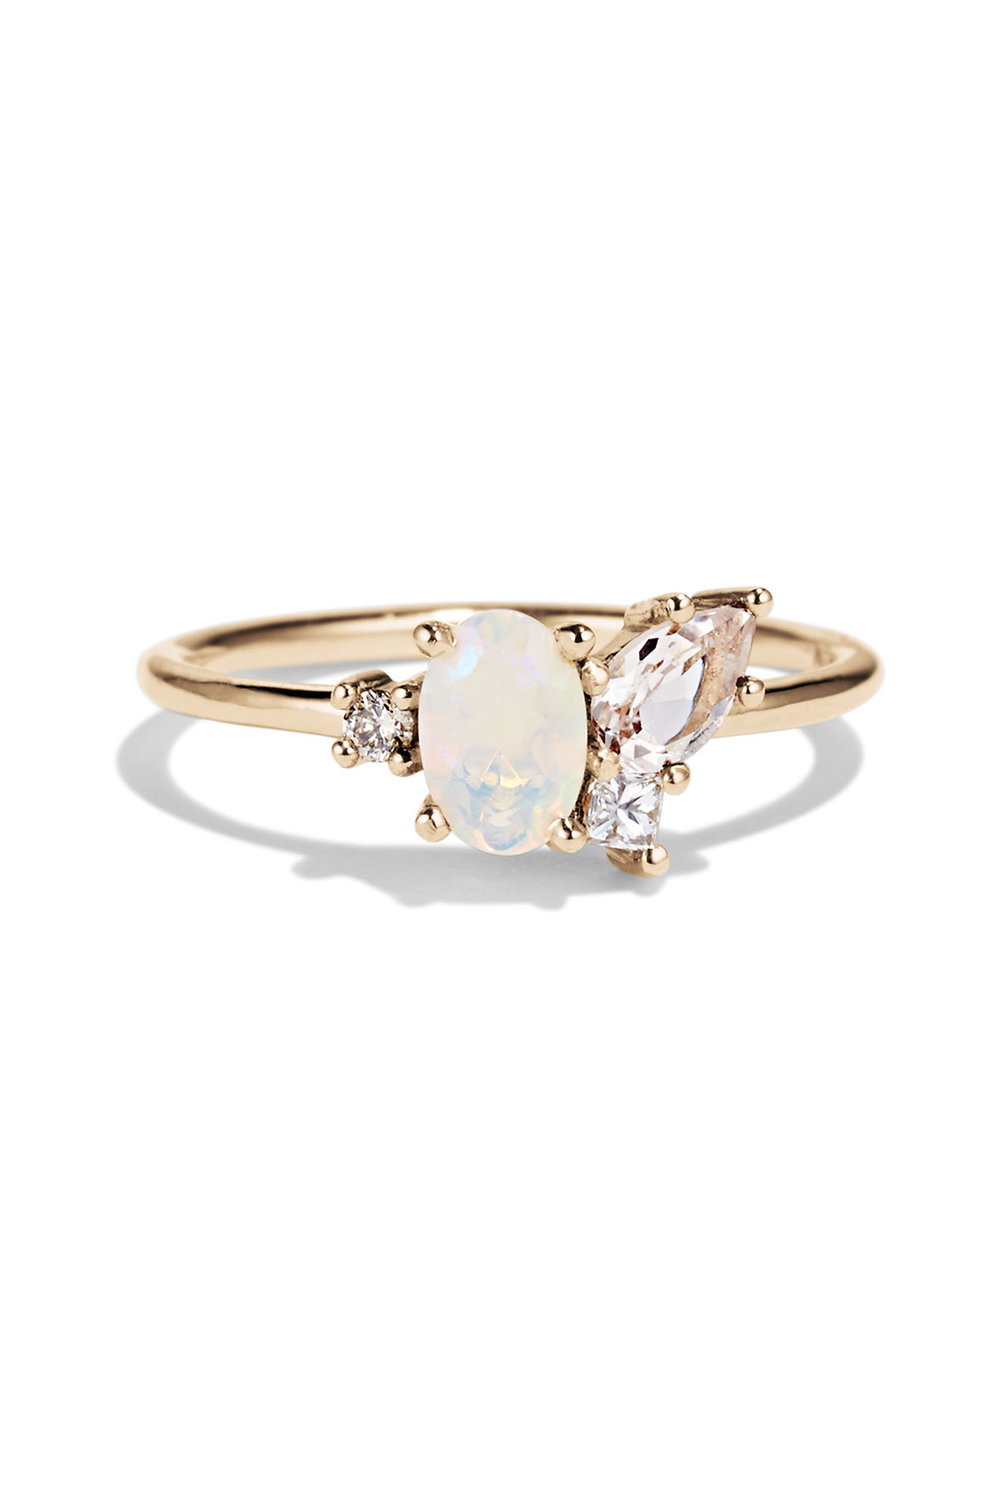 Bario Neal Opal and Morganite Cluster Ring